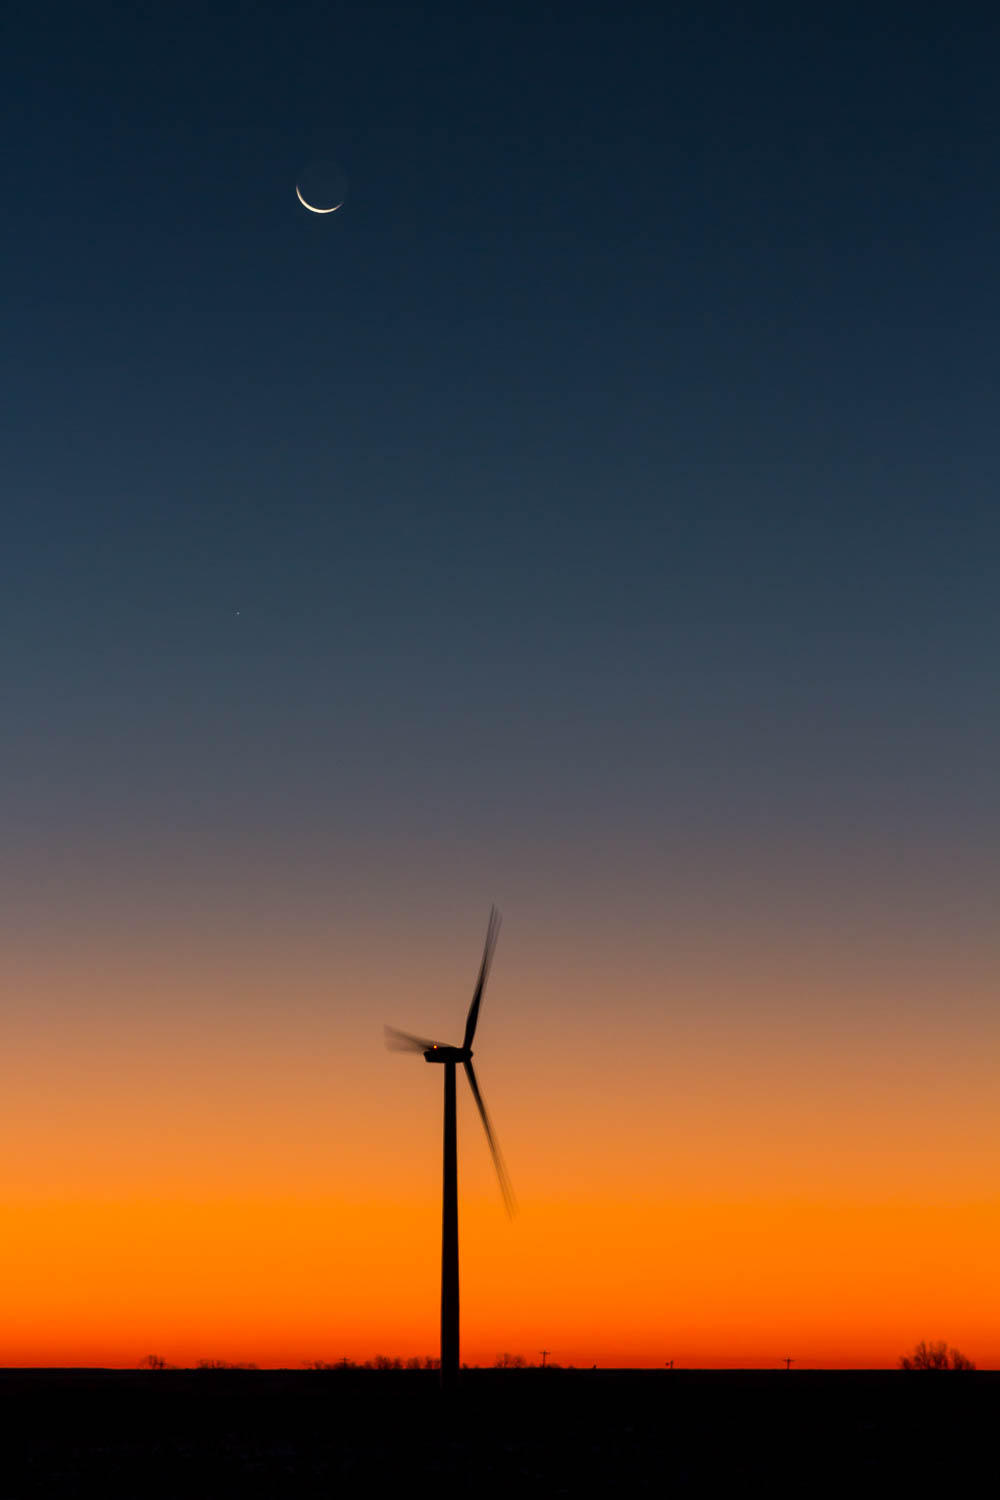 a wind turbine set against the morning sky with a crescent moon at the top of the frame